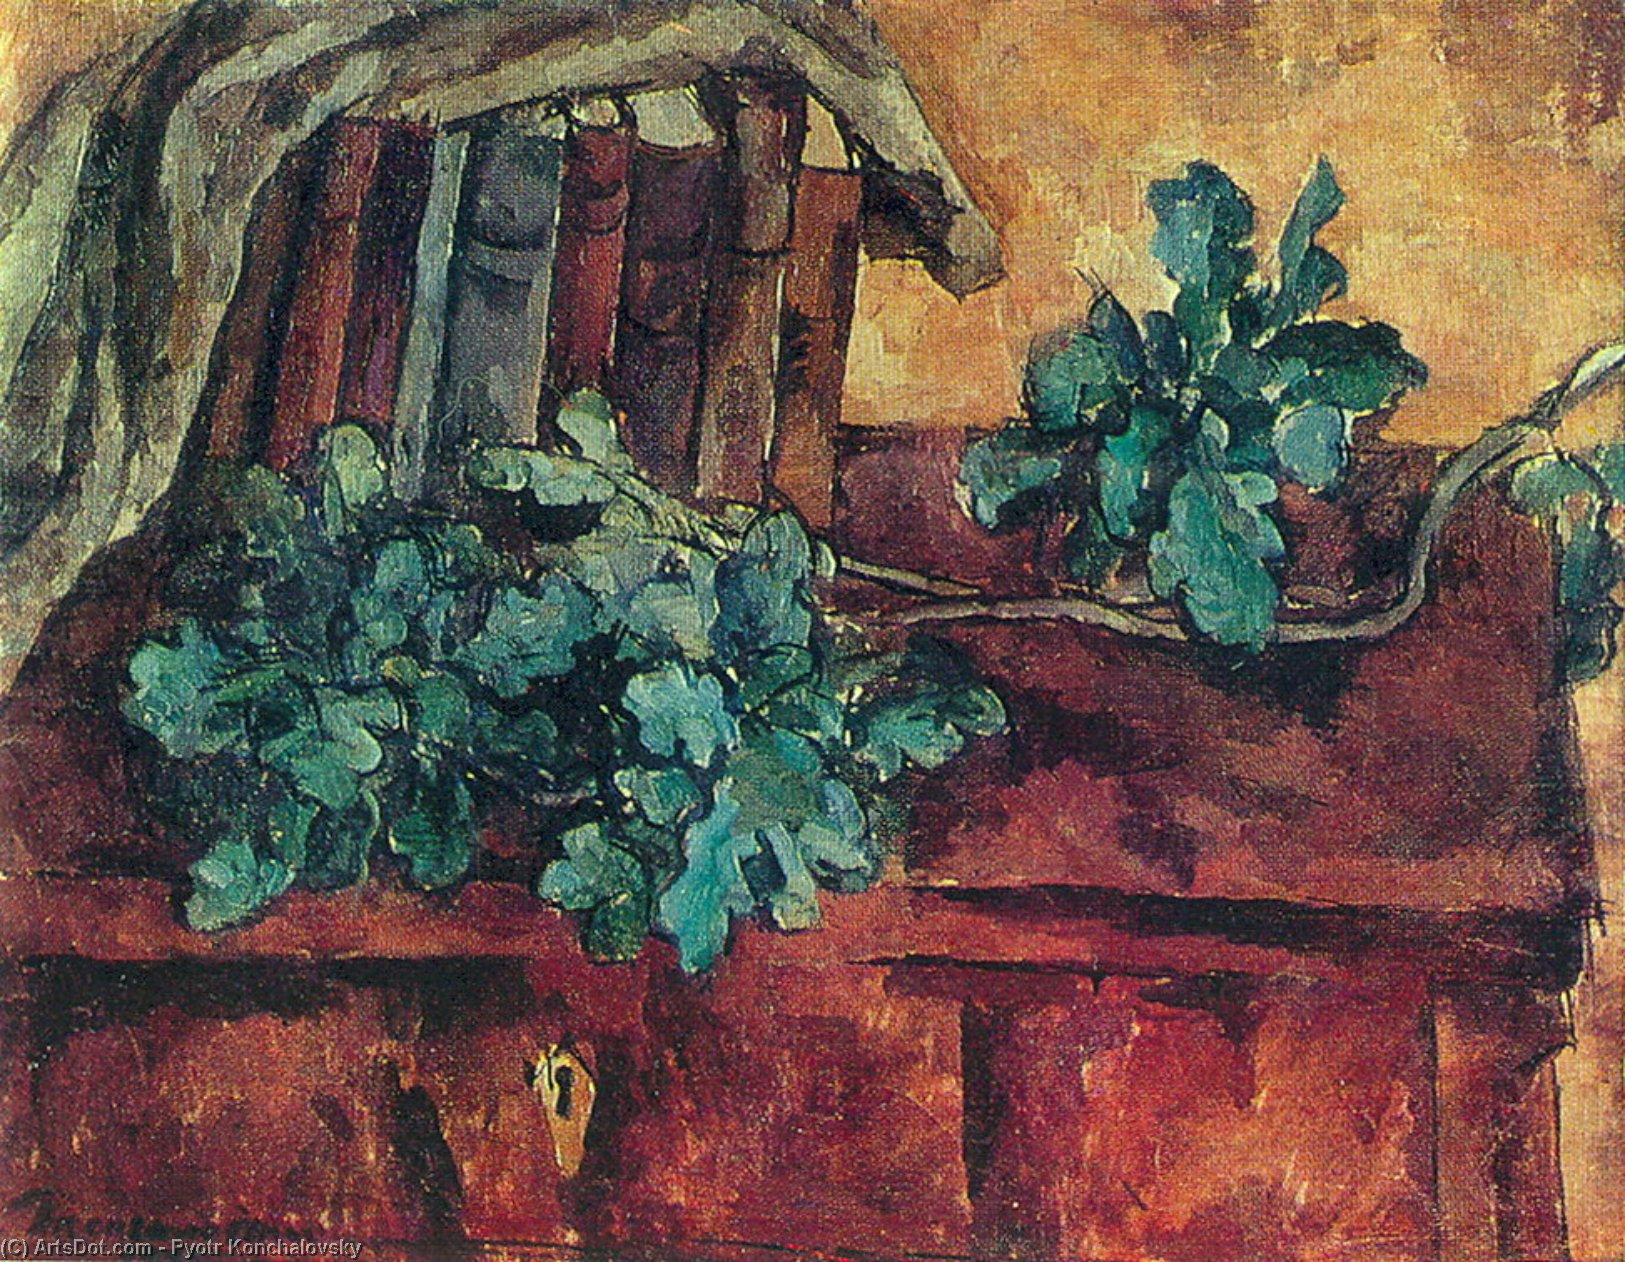 Still Life. Oak branch., 1921 by Pyotr Konchalovsky (1876-1956, Russia)